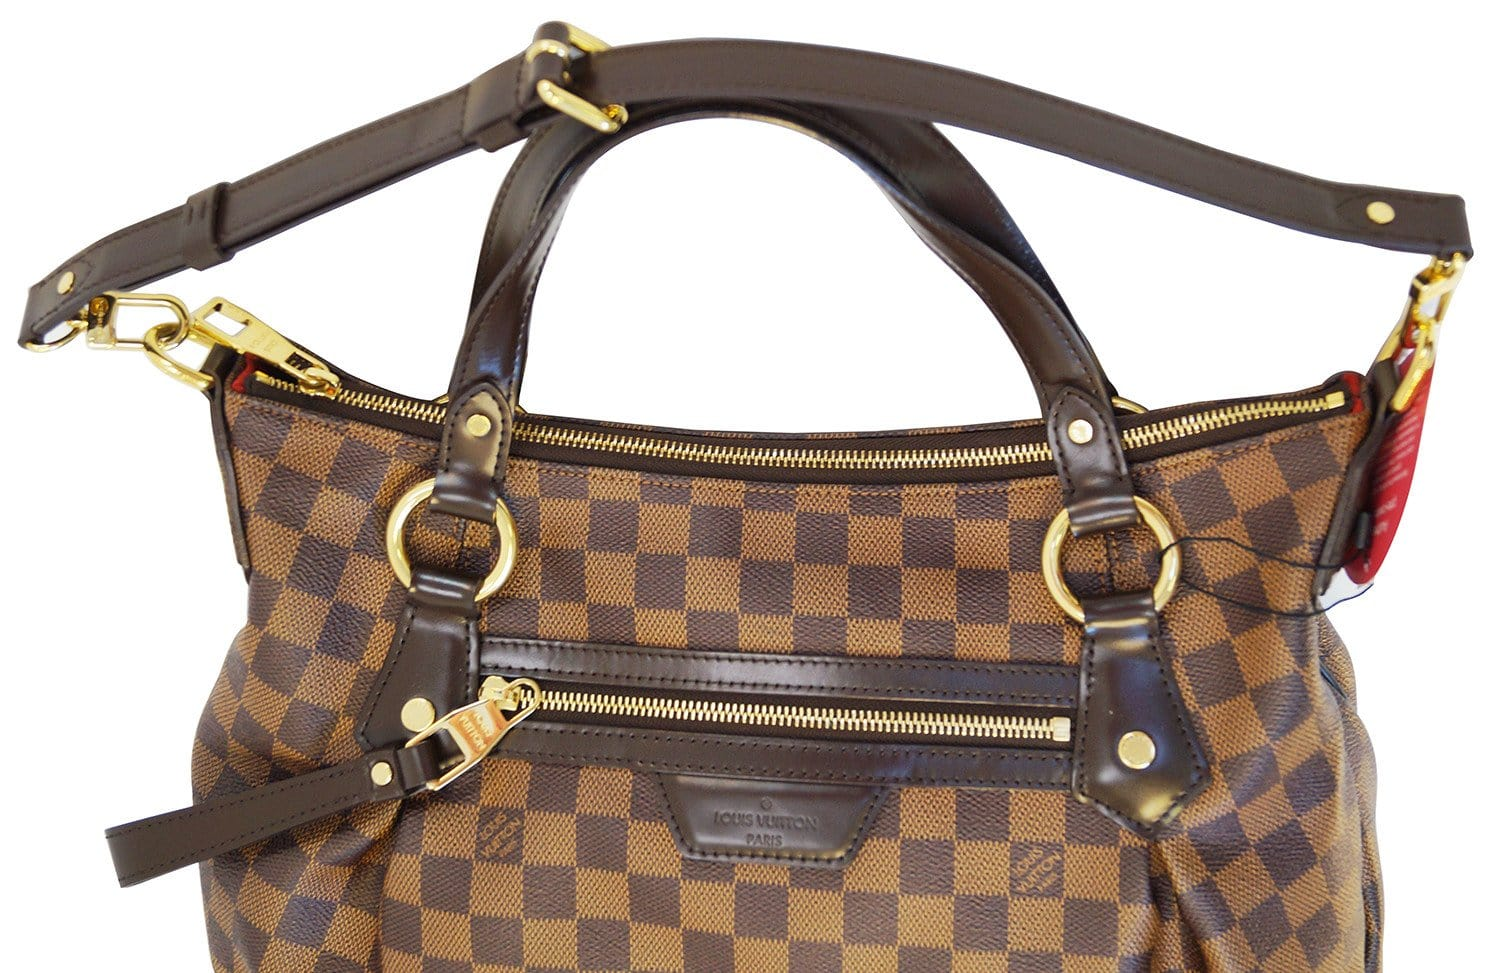 dac08a39d7c6 LOUIS VUITTON Evora MM Damier Ebene Tote Excellent Shoulder Bag